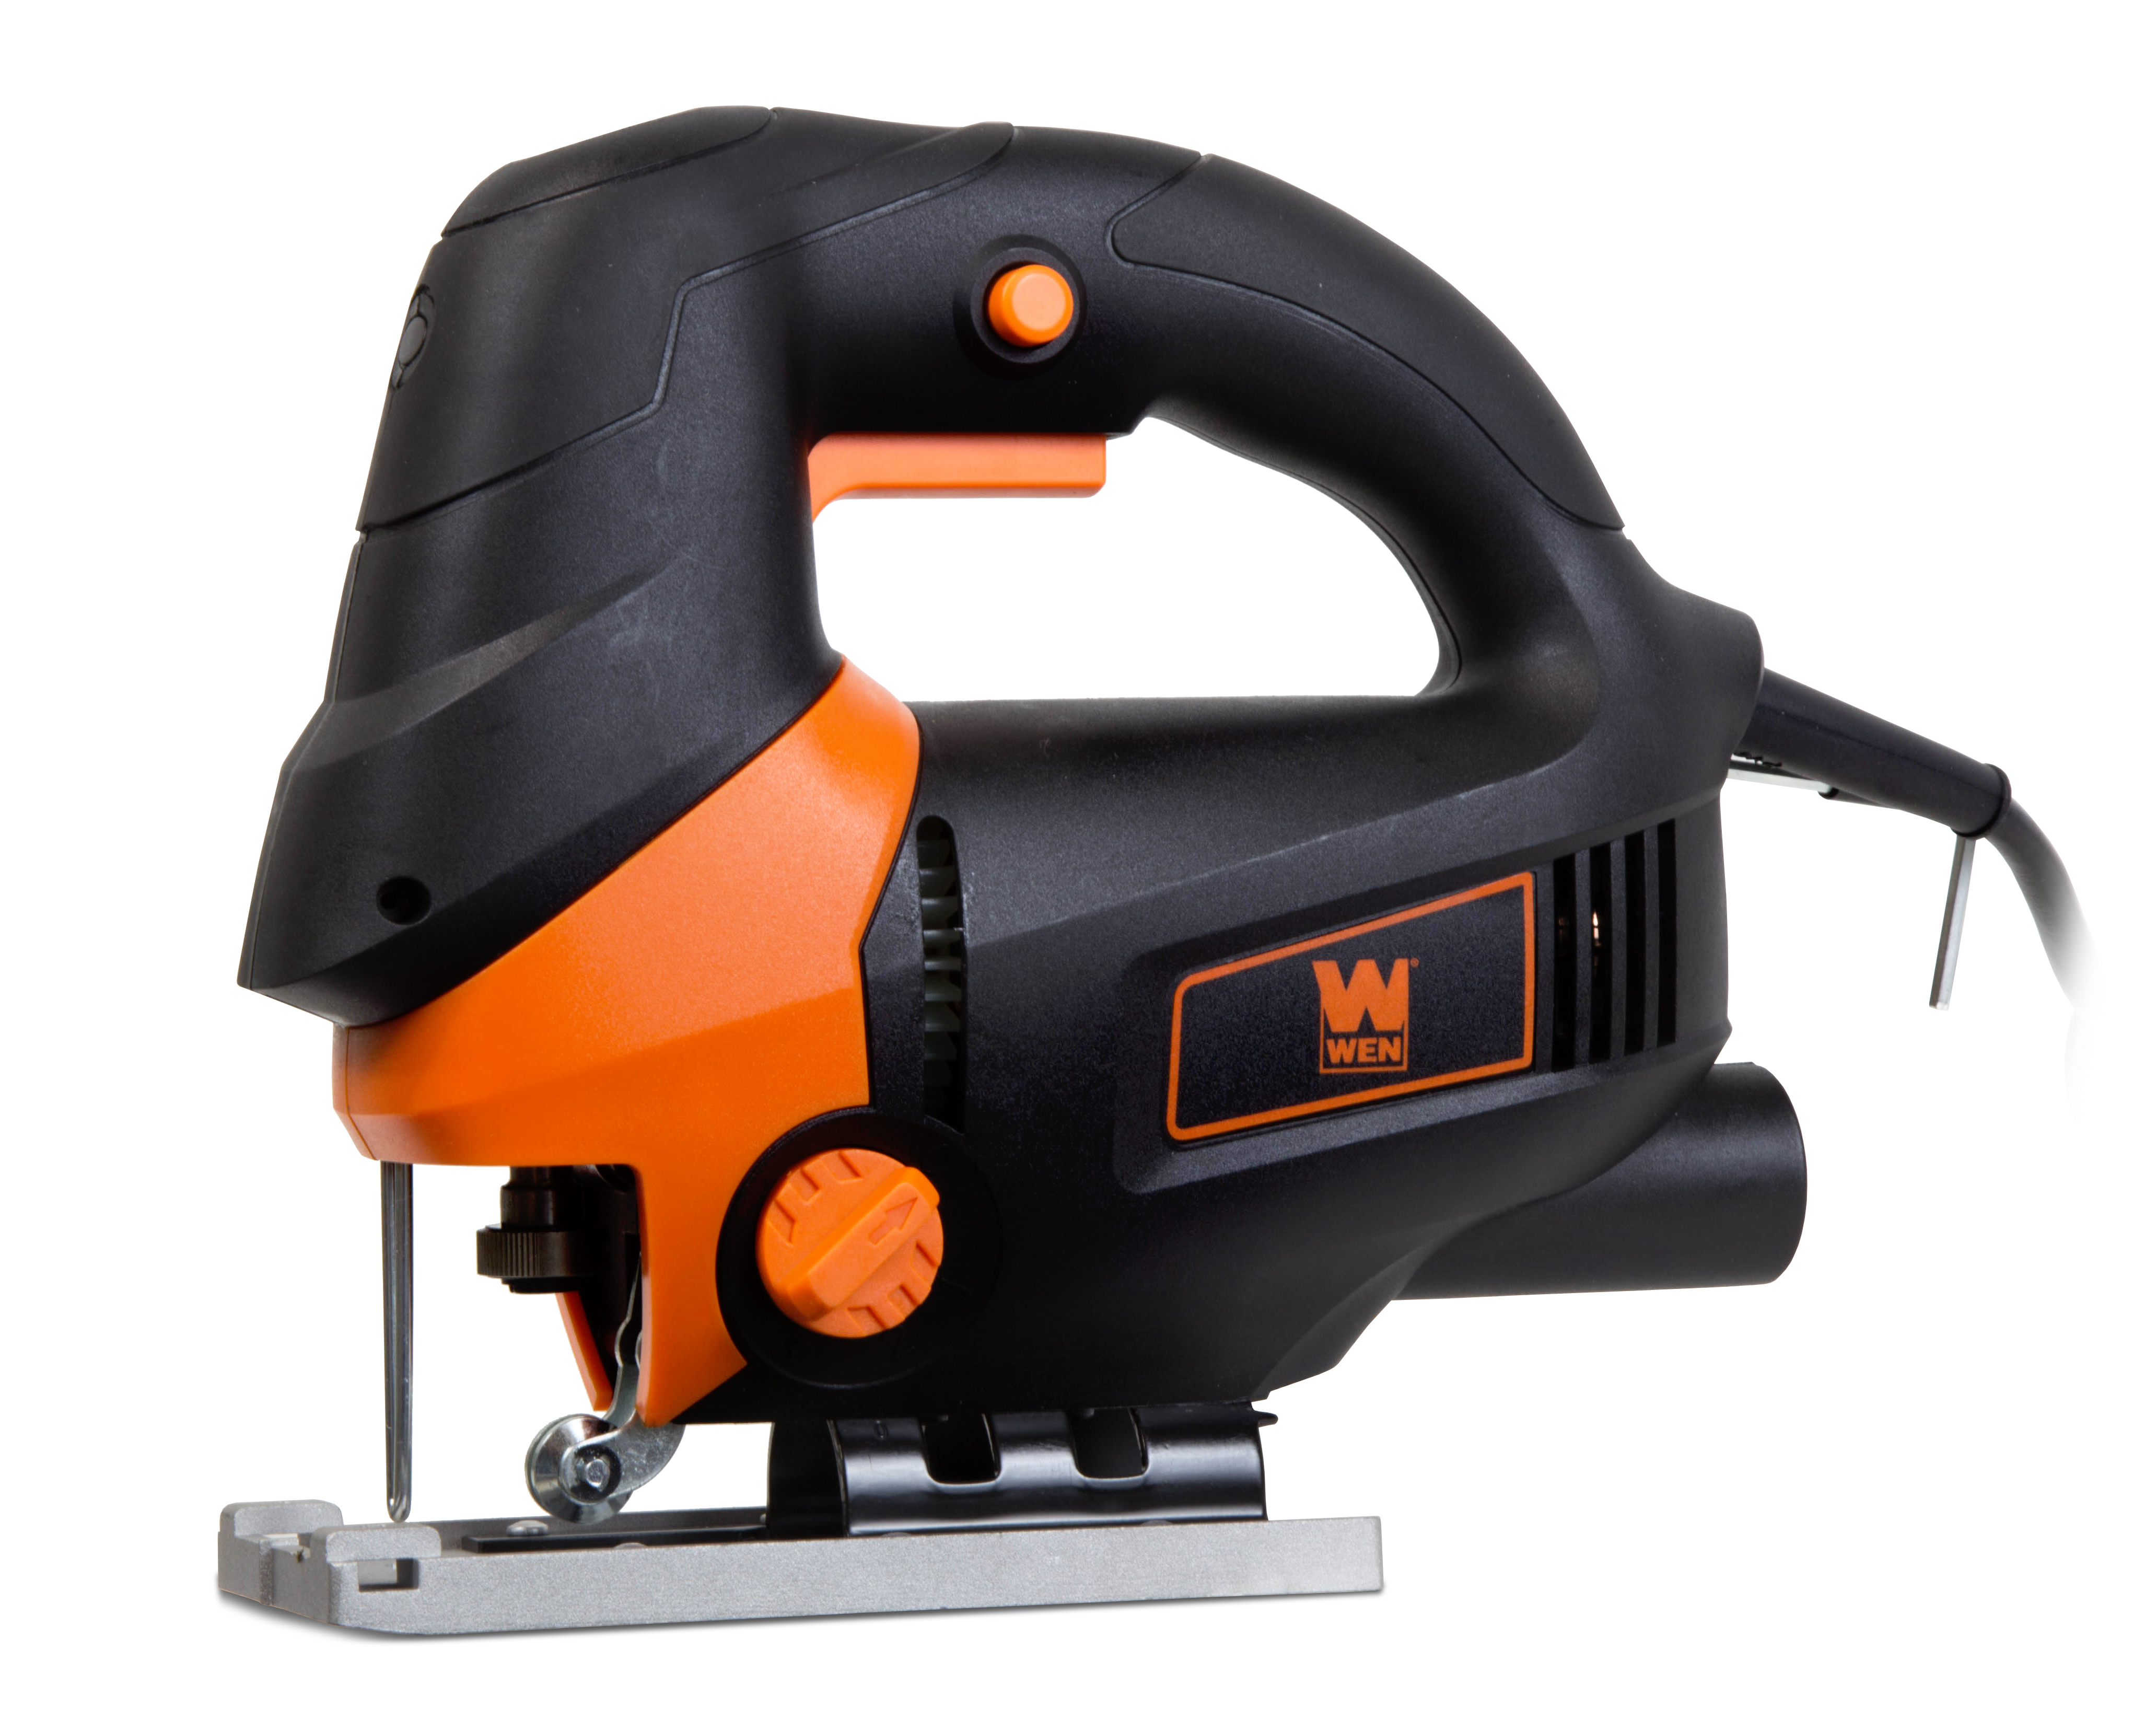 WEN 6-Amp Variable Speed Jig Saw by WEN